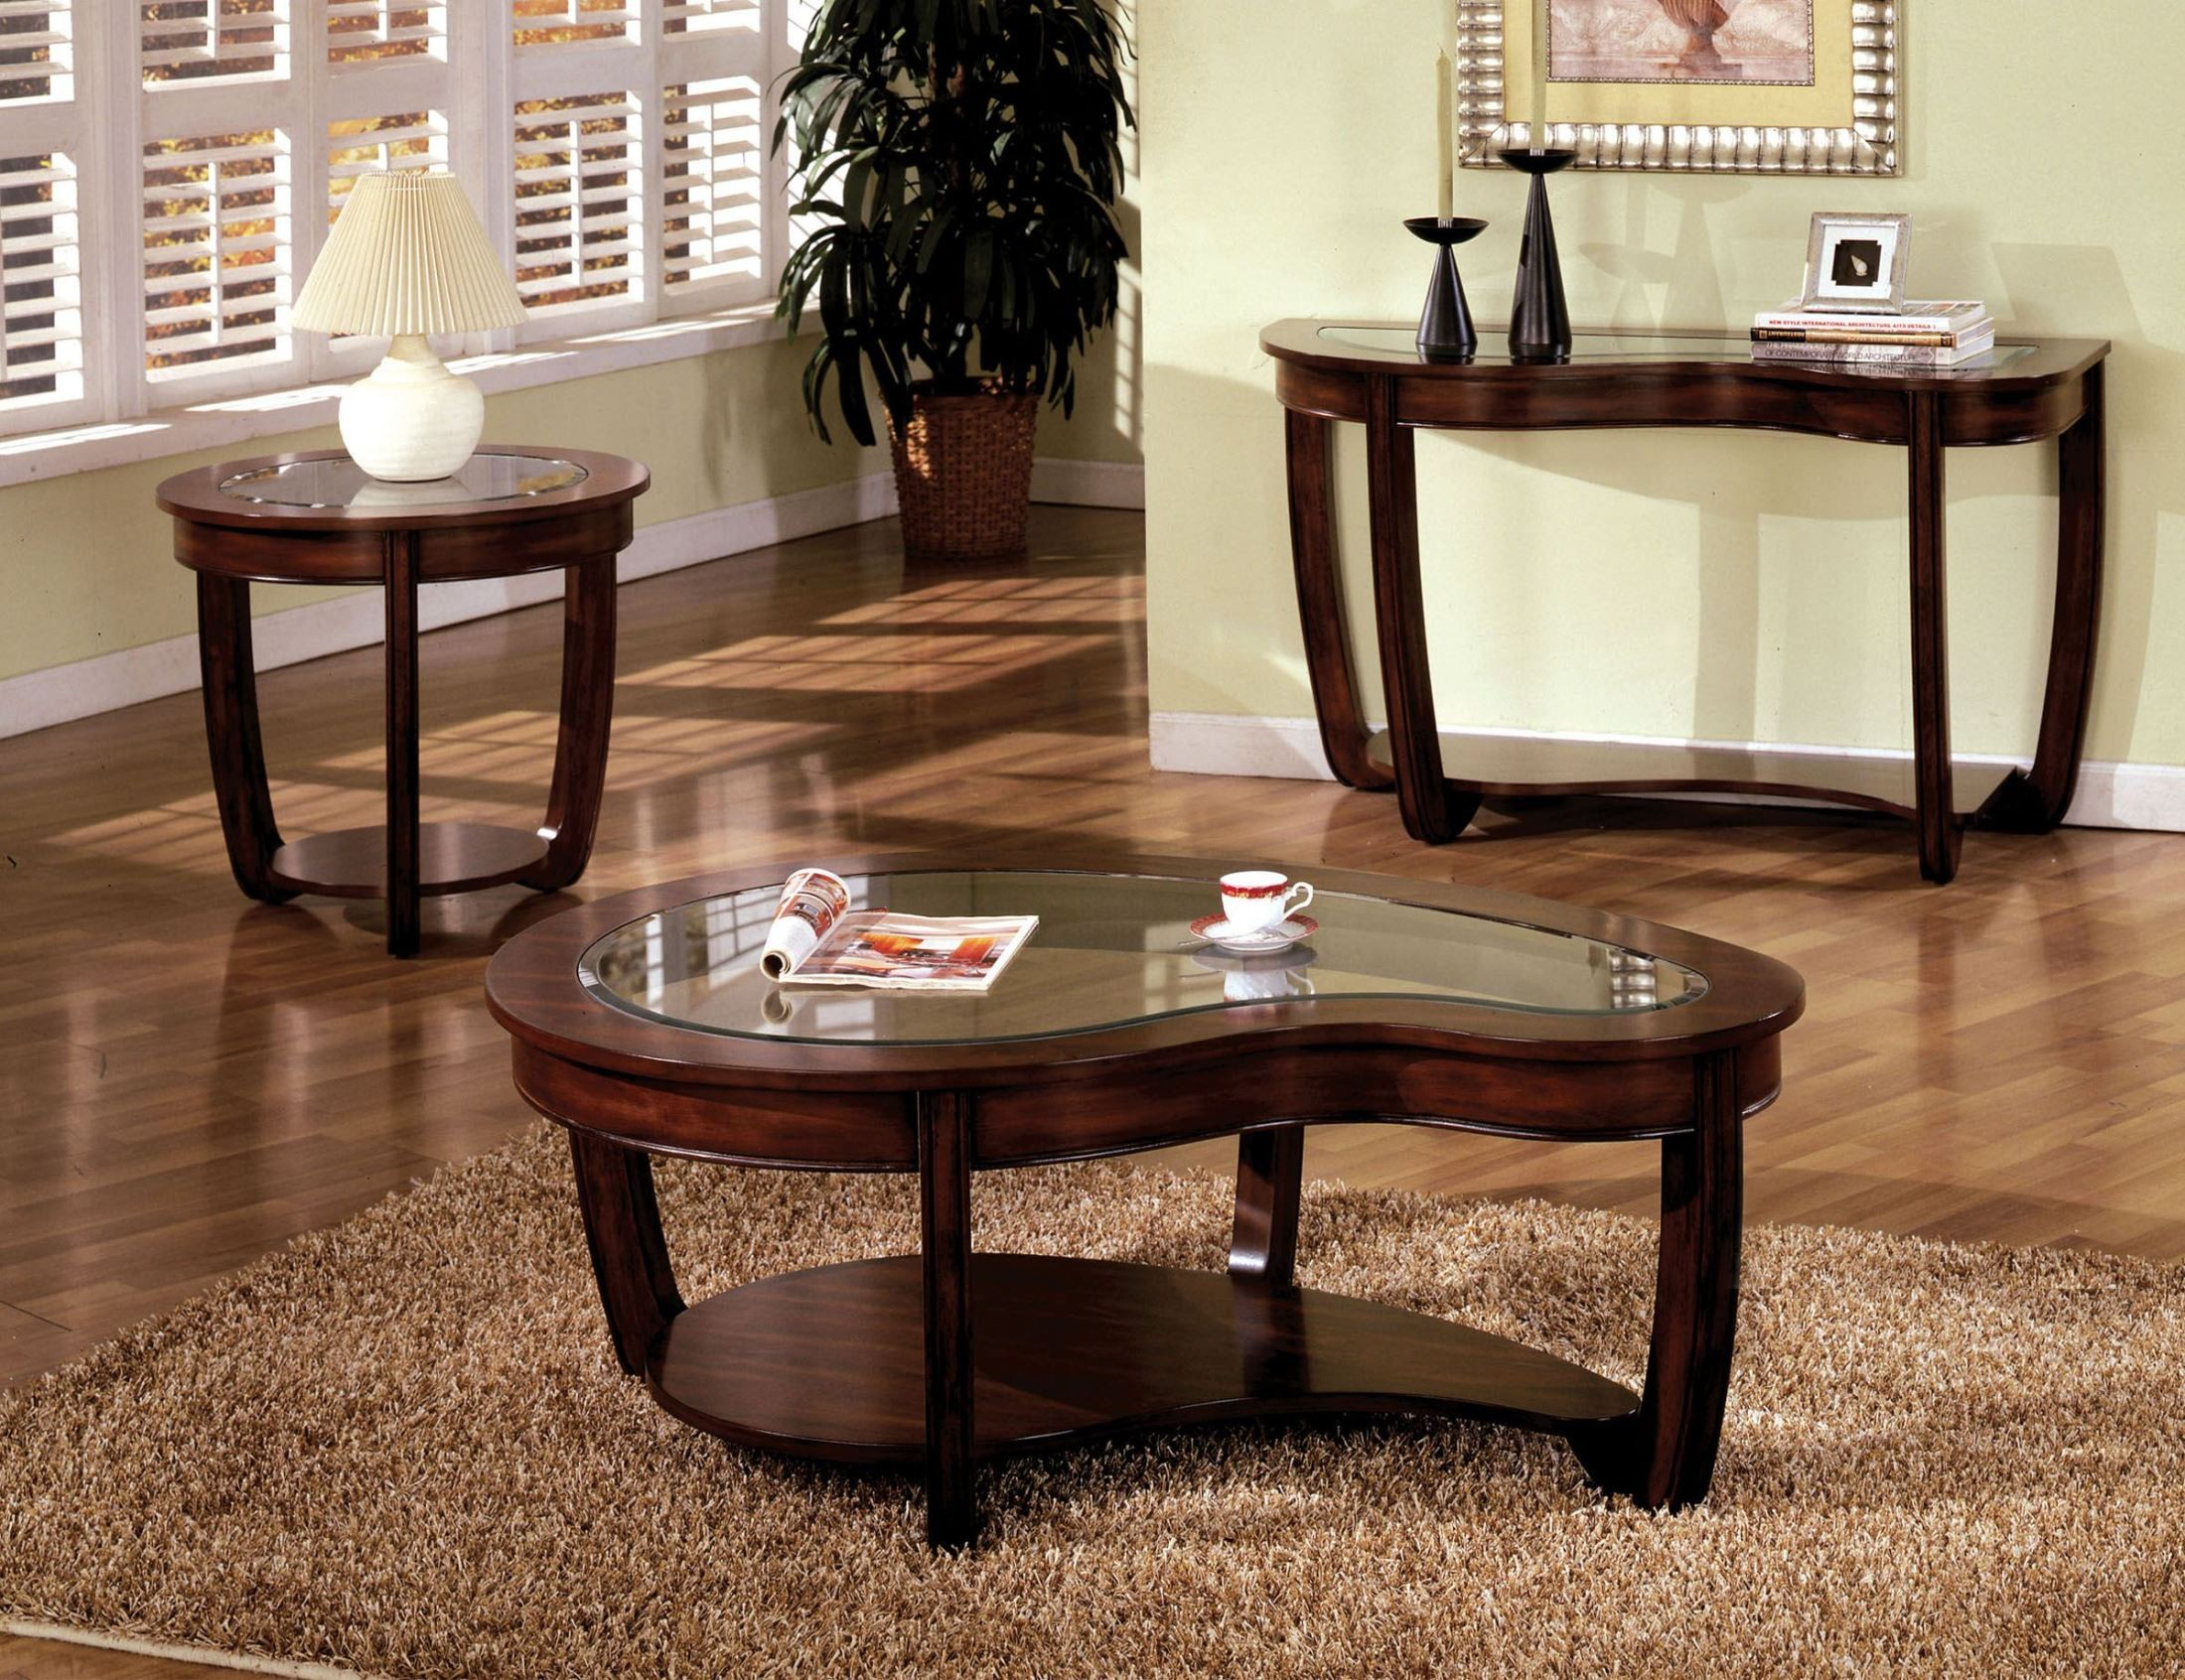 Crystal Falls Dark Cherry Coffee Table From Furniture Of America (CM4336C)  | Coleman Furniture